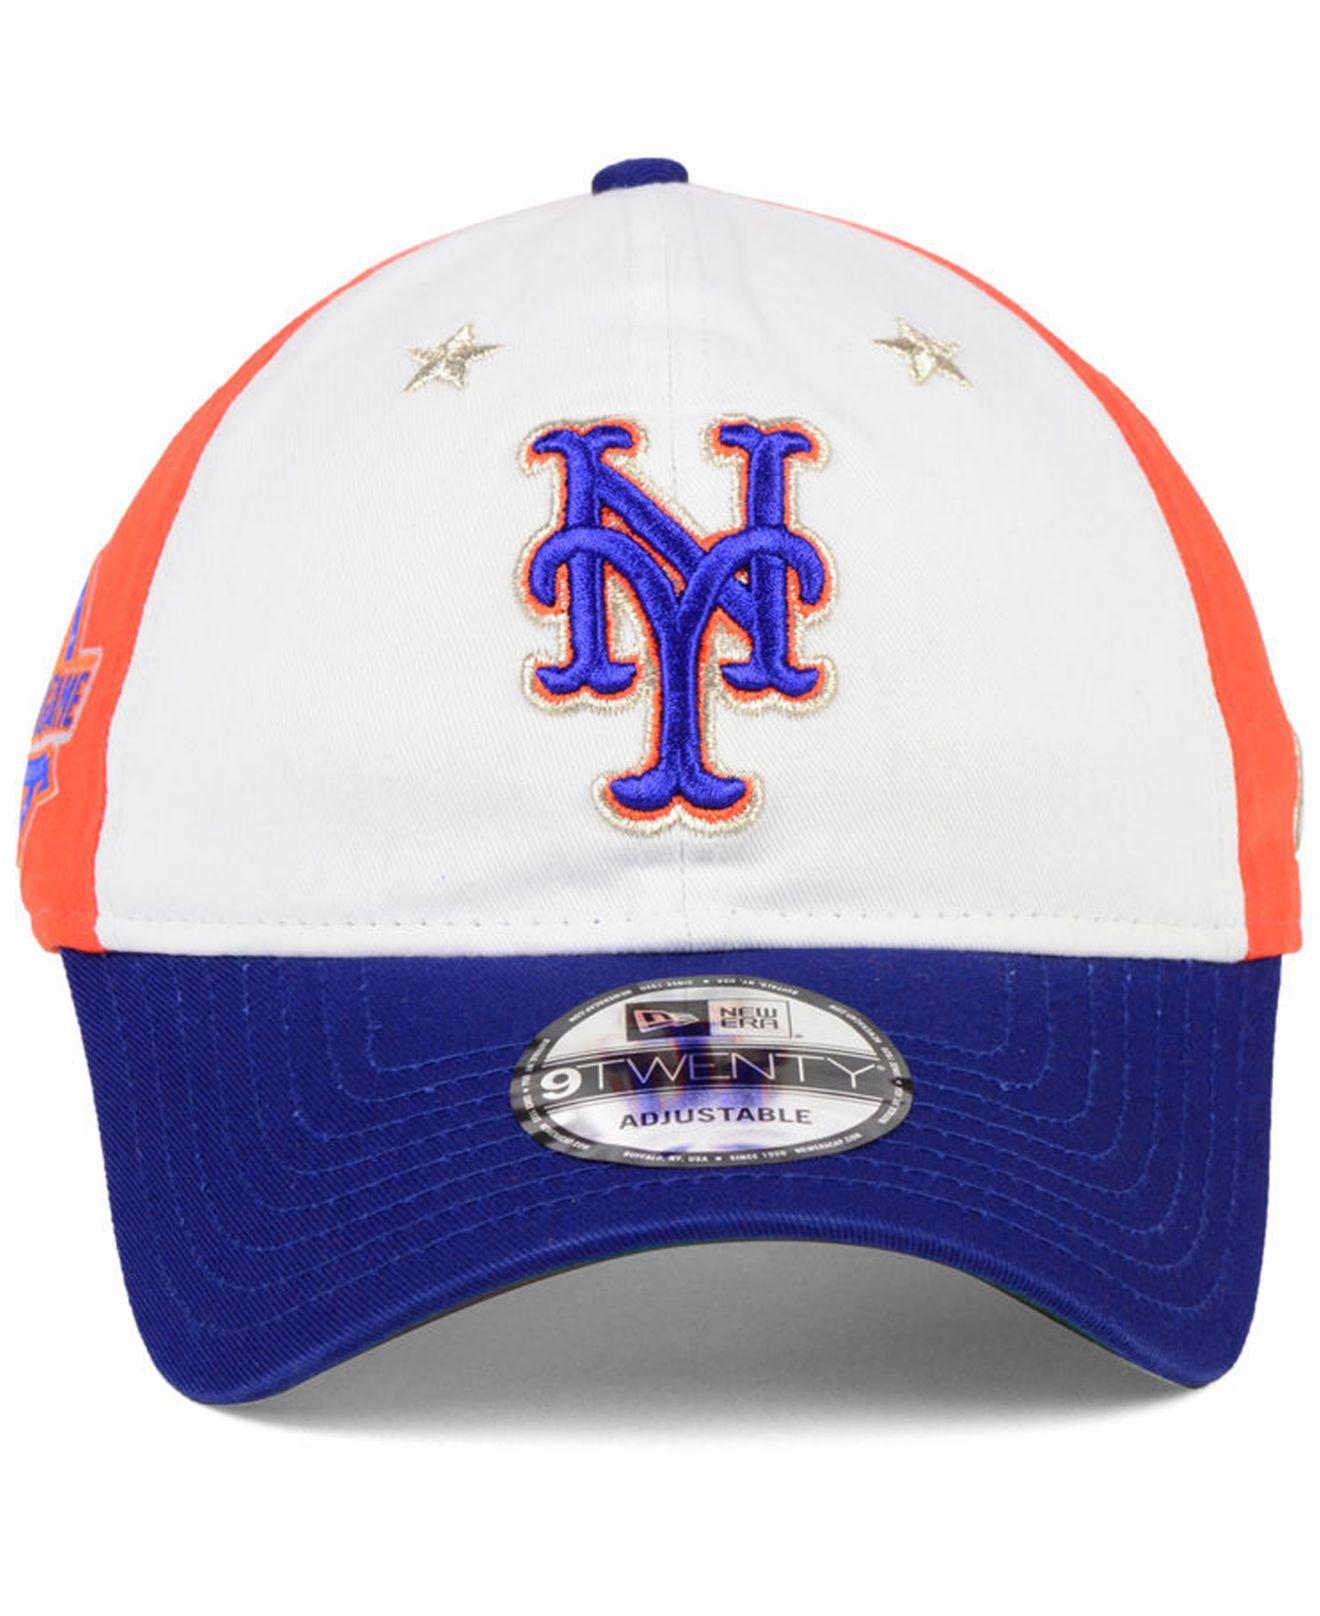 d4cf299711f48 ... 59fifty fitted hat white large e87e7 cebc8  usa lyst ktz new york mets  all star game 9twenty strapback cap 2018 for men bce10